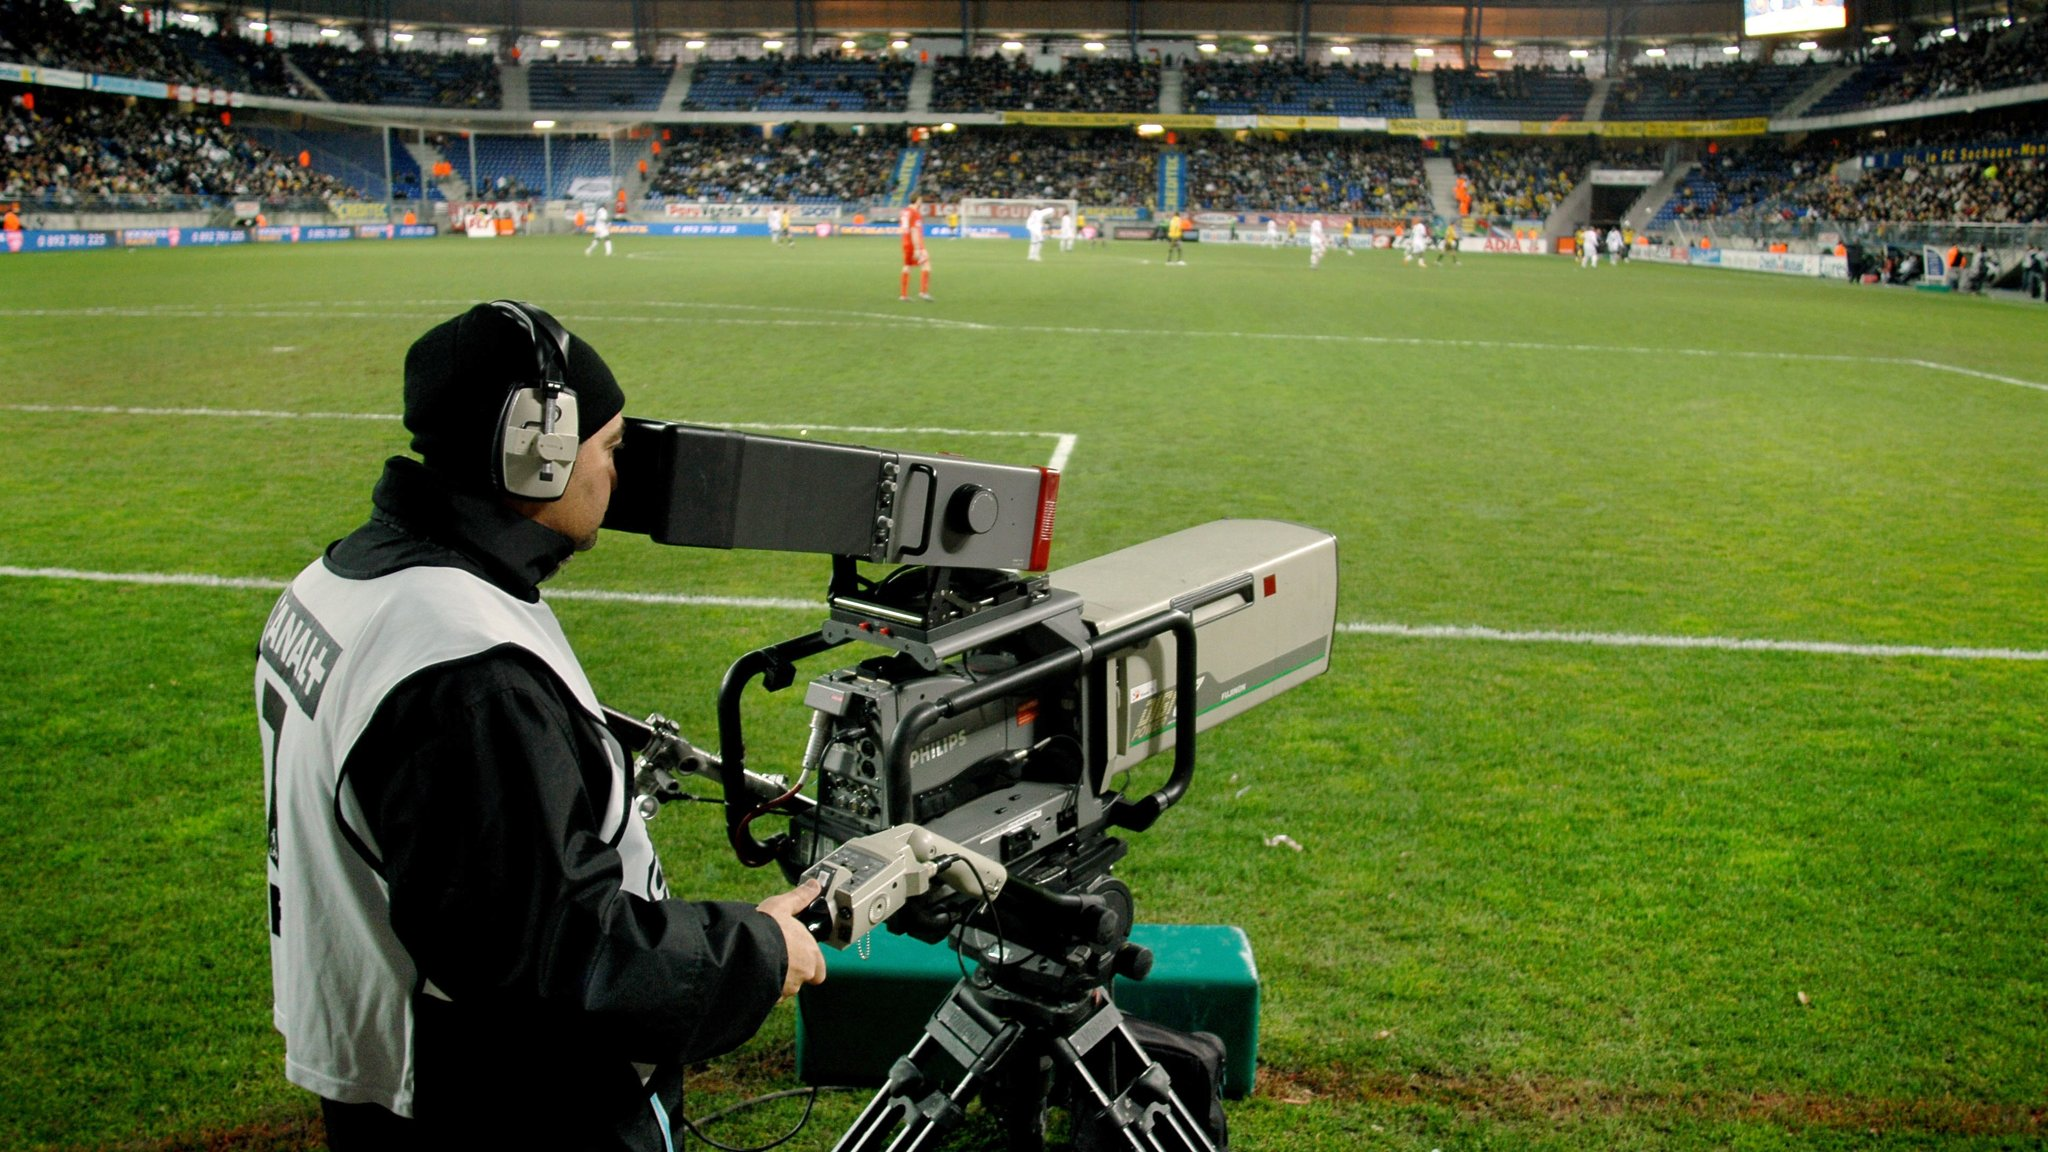 Support Tv Deporte Vivendis Canal Plus In Talks To Share Content With Bein